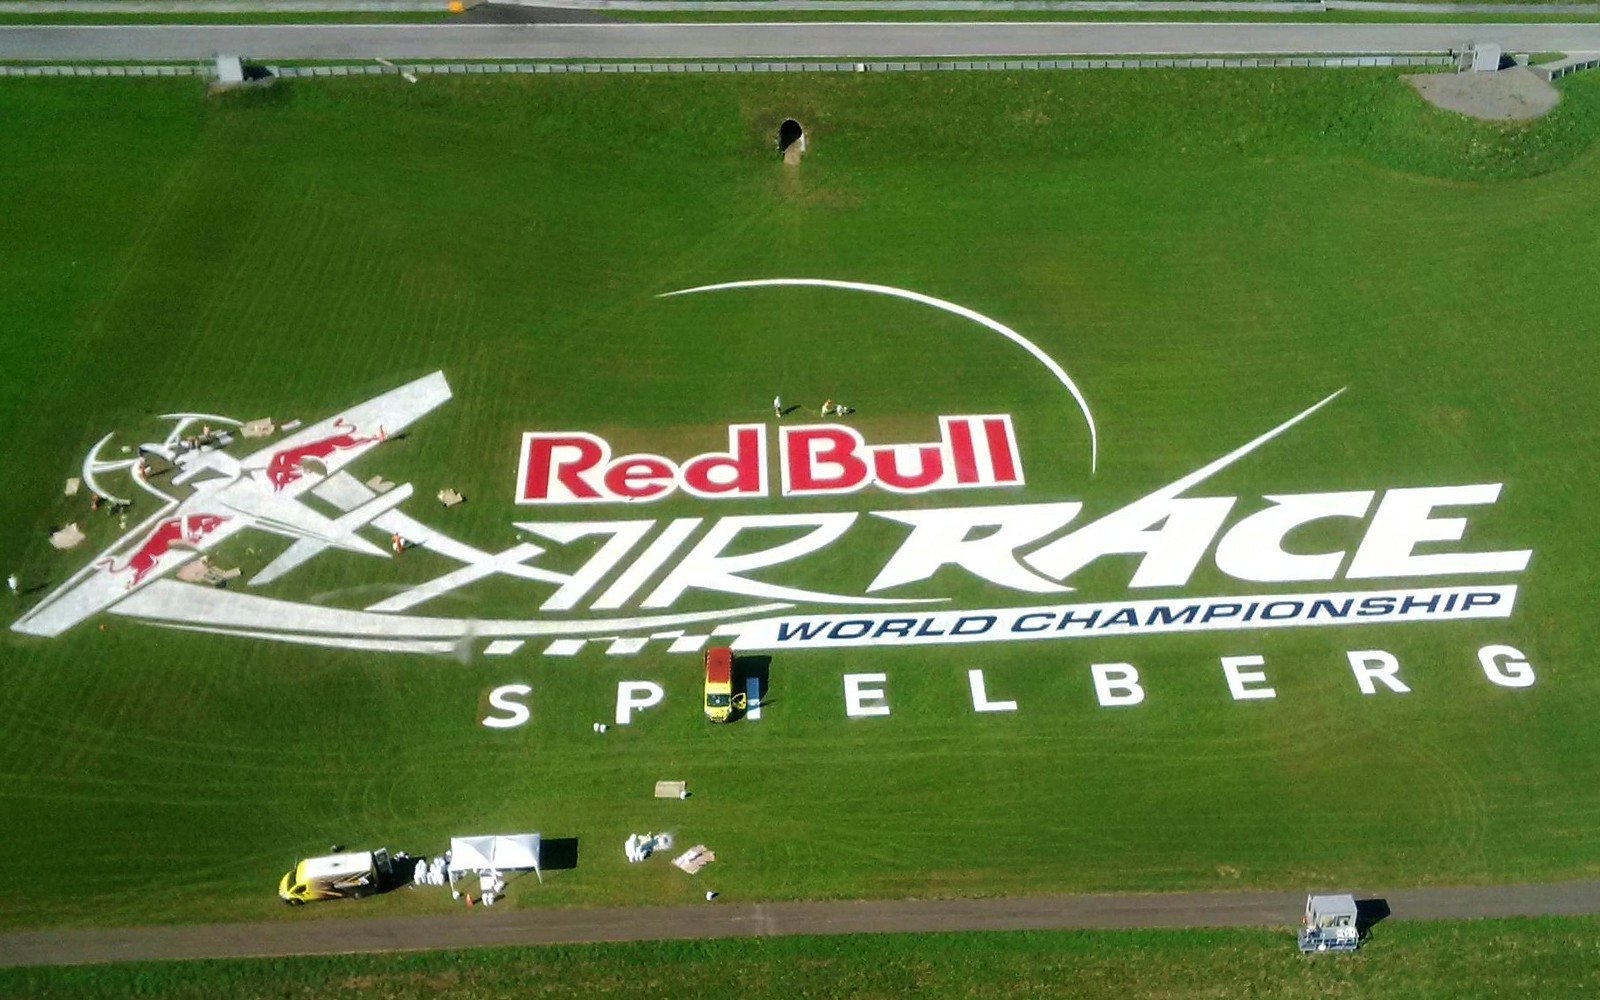 Bird view handpainted grass branding Red Bull Air Race Spielberg Austria | Mural malowany na trawie - RedBull Air Race Austria | Portfolio